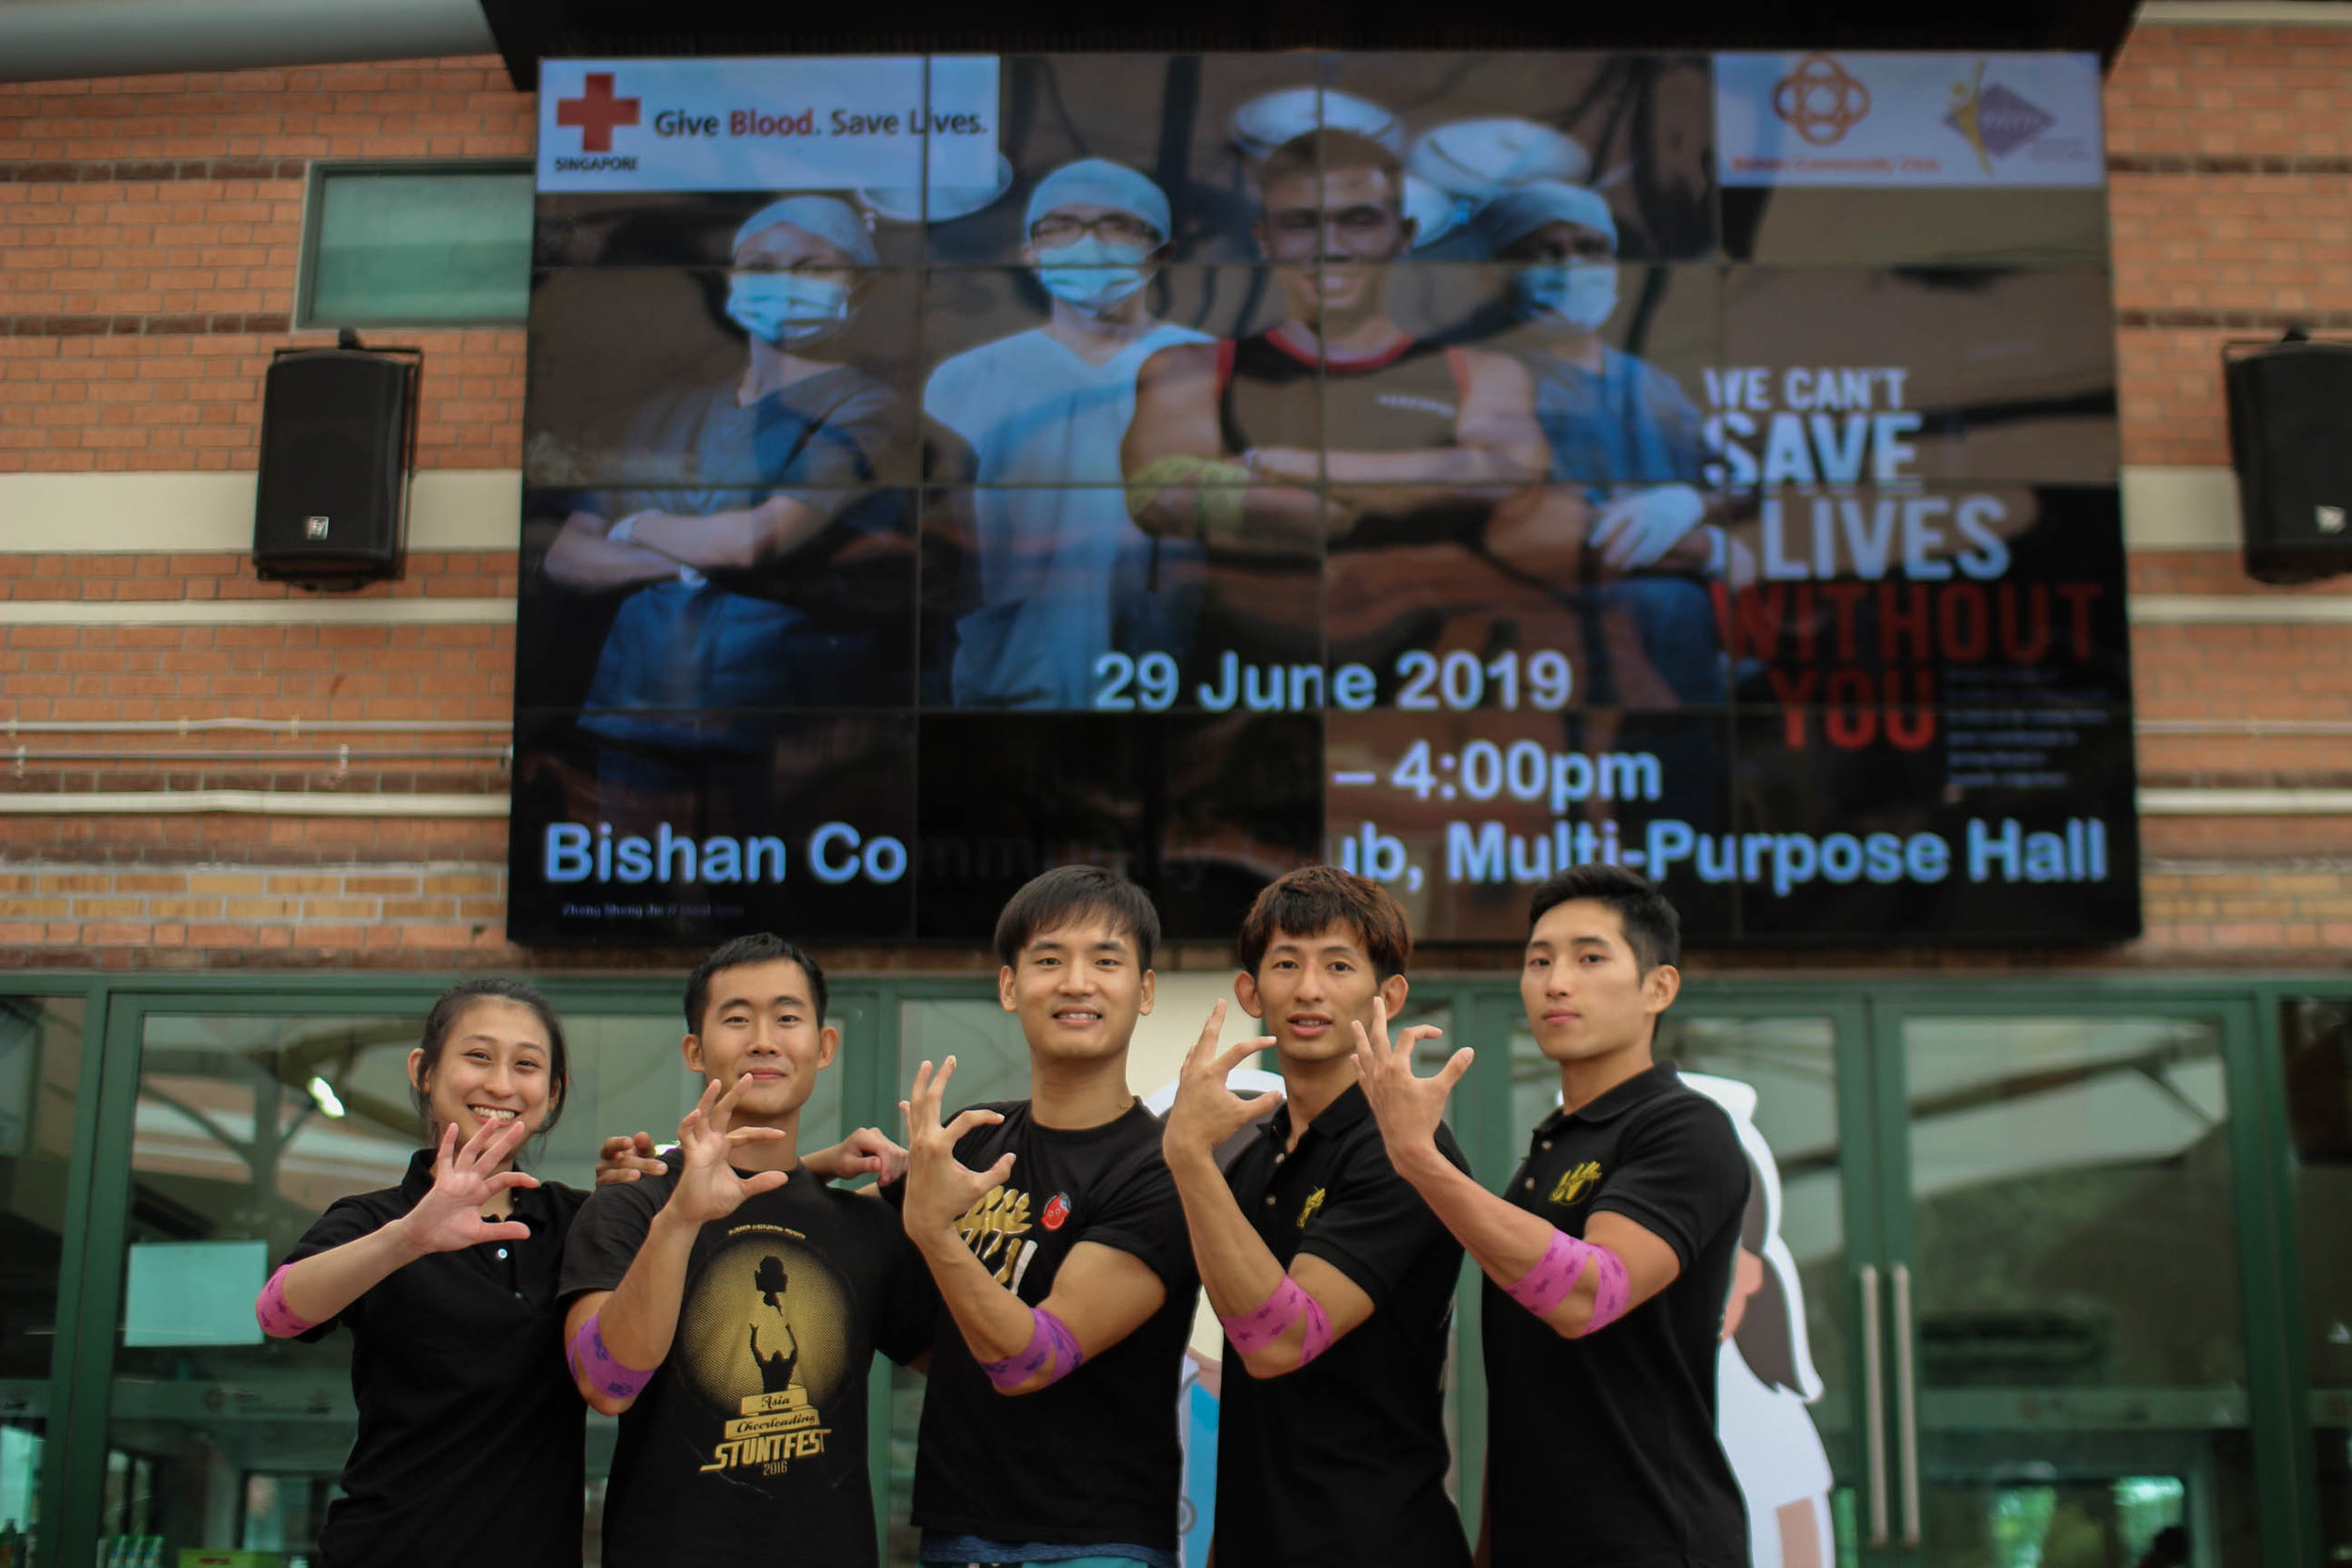 Of all the people that tried to donate blood, only 6 were eligible!   From left  1. Zara  2. Yi Sheng  3. Chris  4. Vince   5. Rynell  6. Jasmine Tan (Not in picture)   Wildcards salute you heroes!